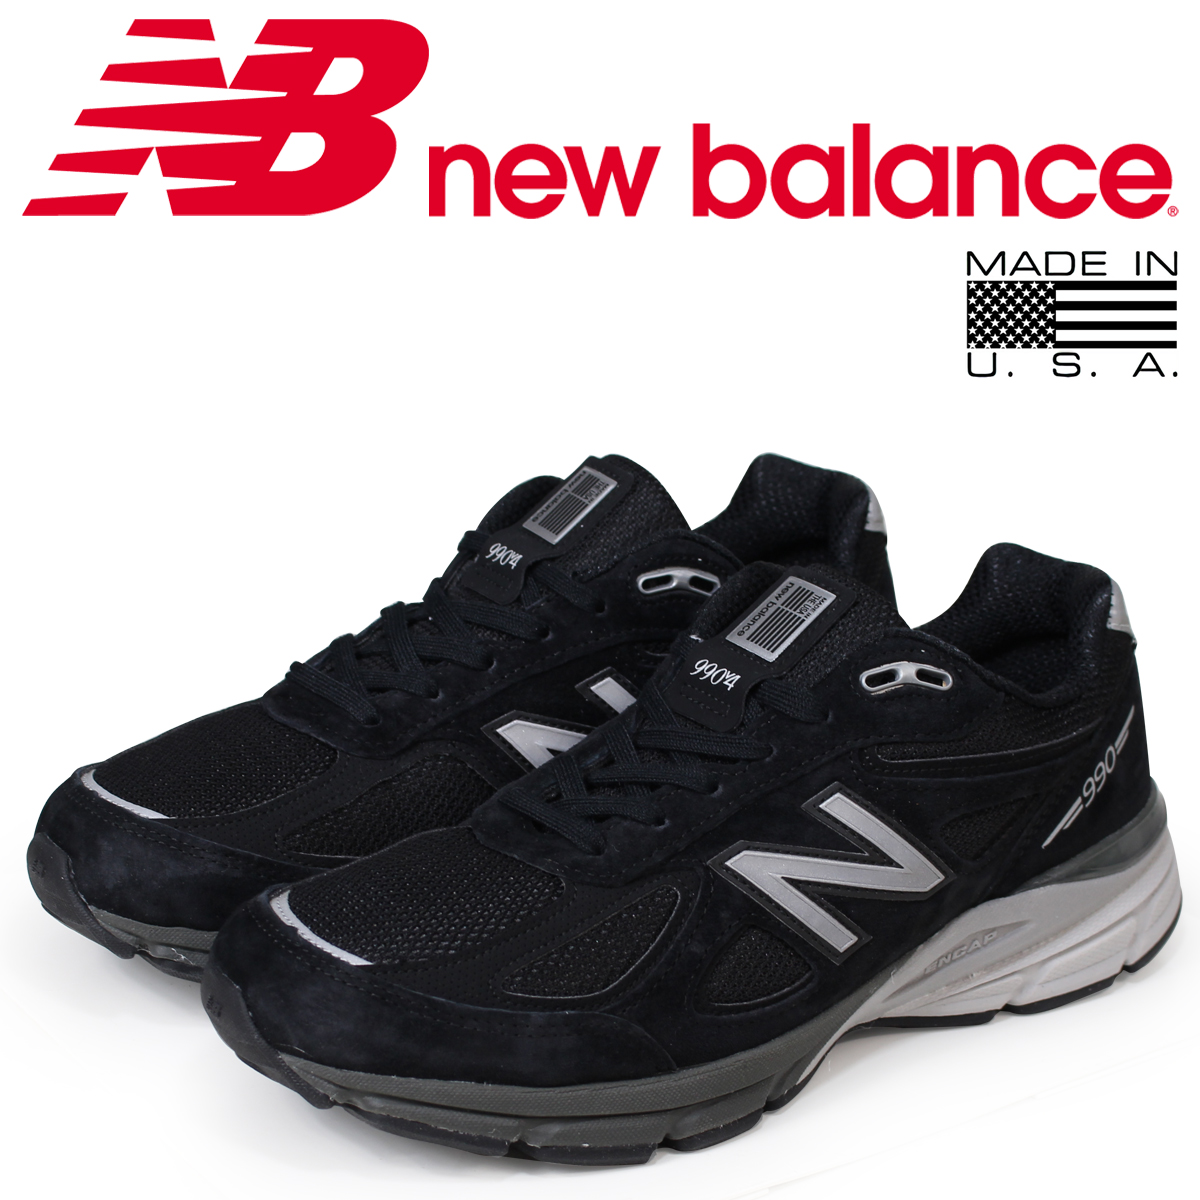 best service 88ef3 6aa61 new balance 990 men's New Balance sneakers M990BK4 D Wise MADE IN USA shoes  black black